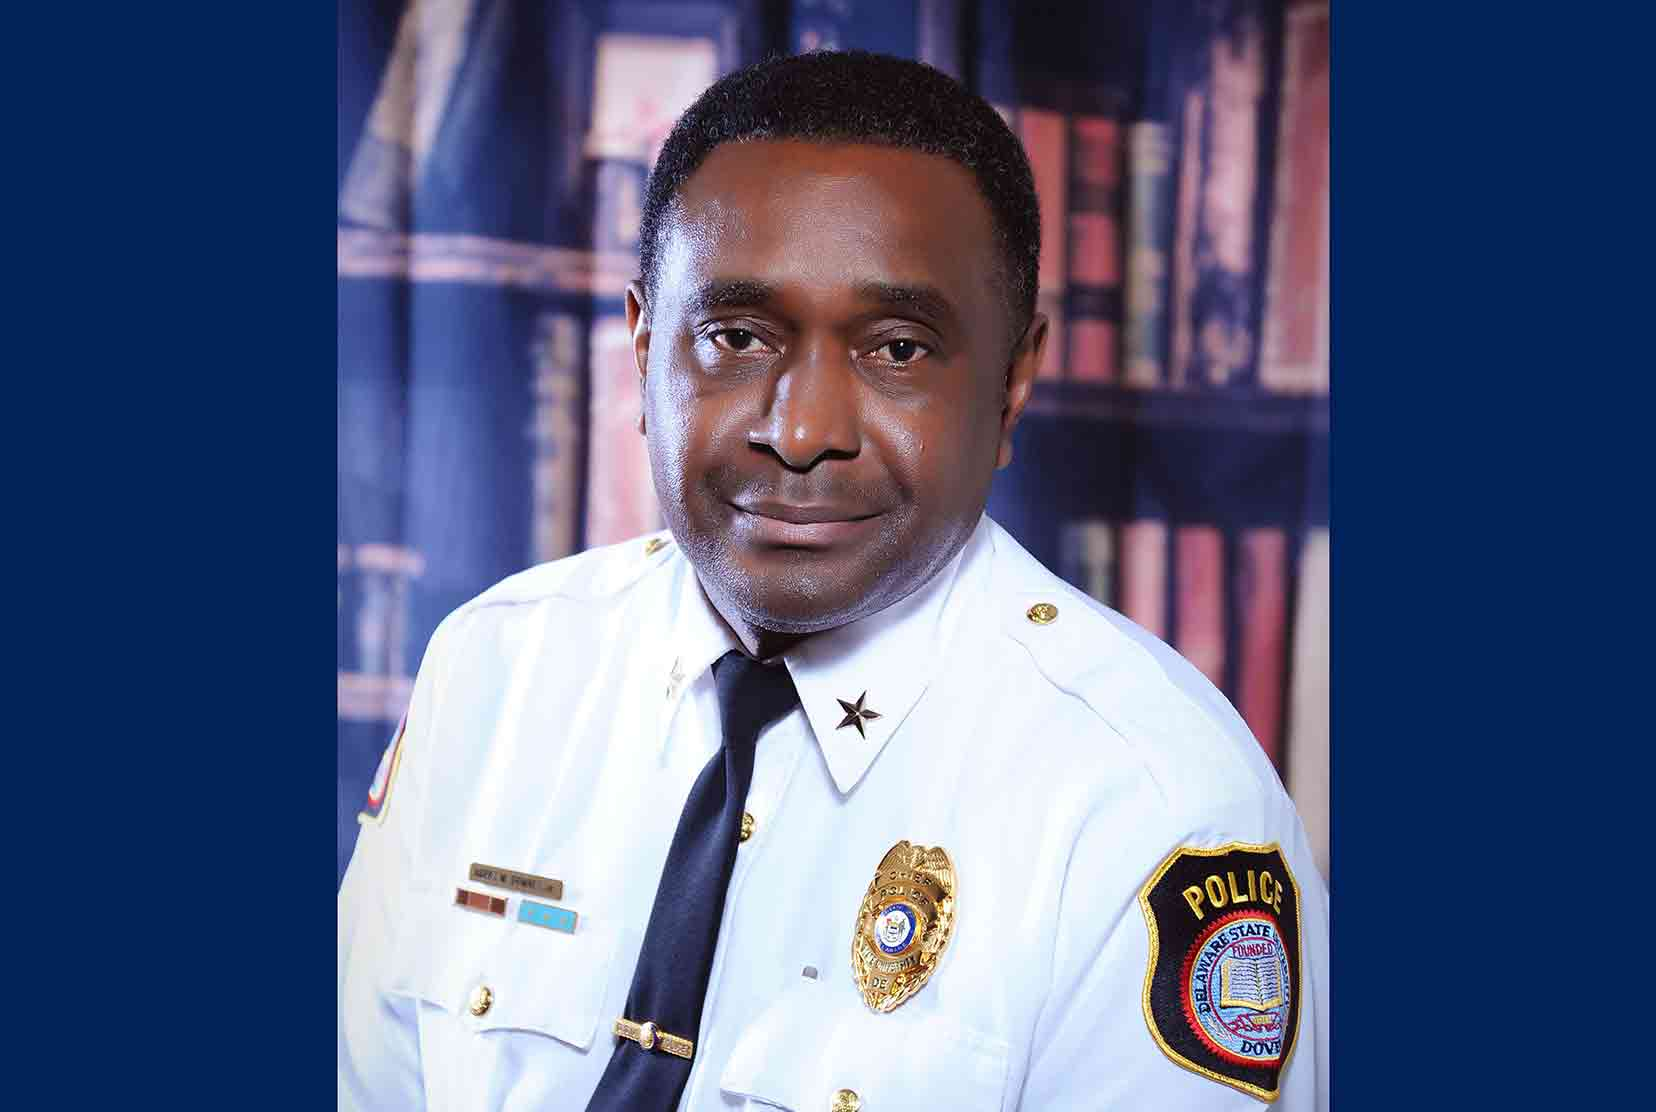 Chief Harry Downes Jr. ends his 10-year career as the campus Police Chief with the University being ranked #14 among the Top 25 institutions by the Safe Campus organization.